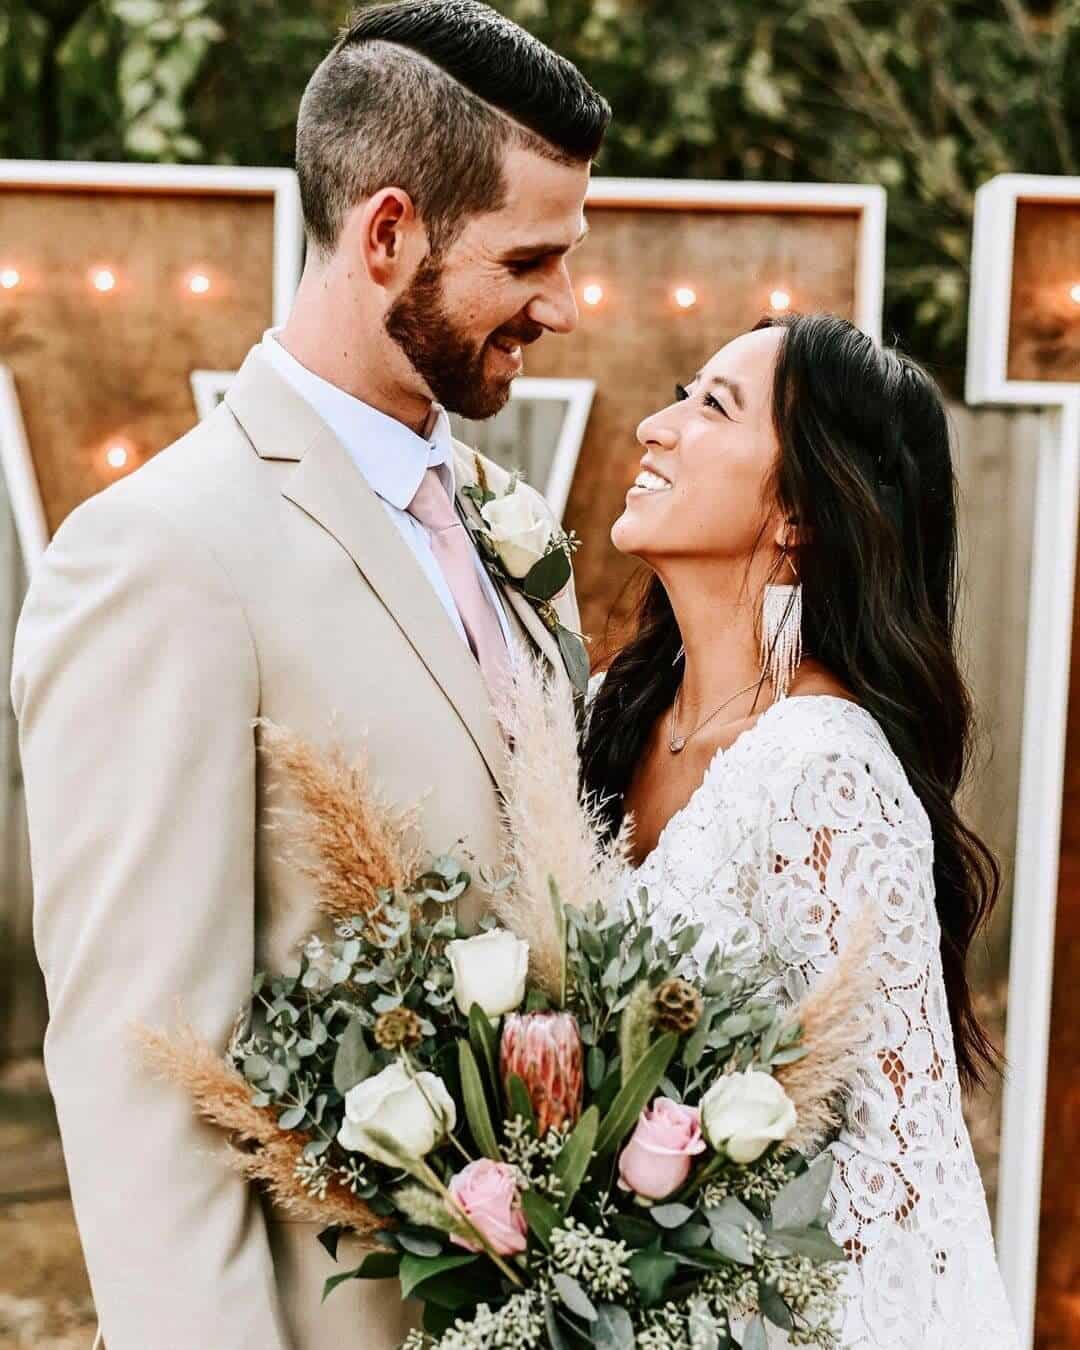 Affordable Wedding Dresses Online Bohemian Lace Bell Sleeve Maxi Dress Nancy Rose Photography 2